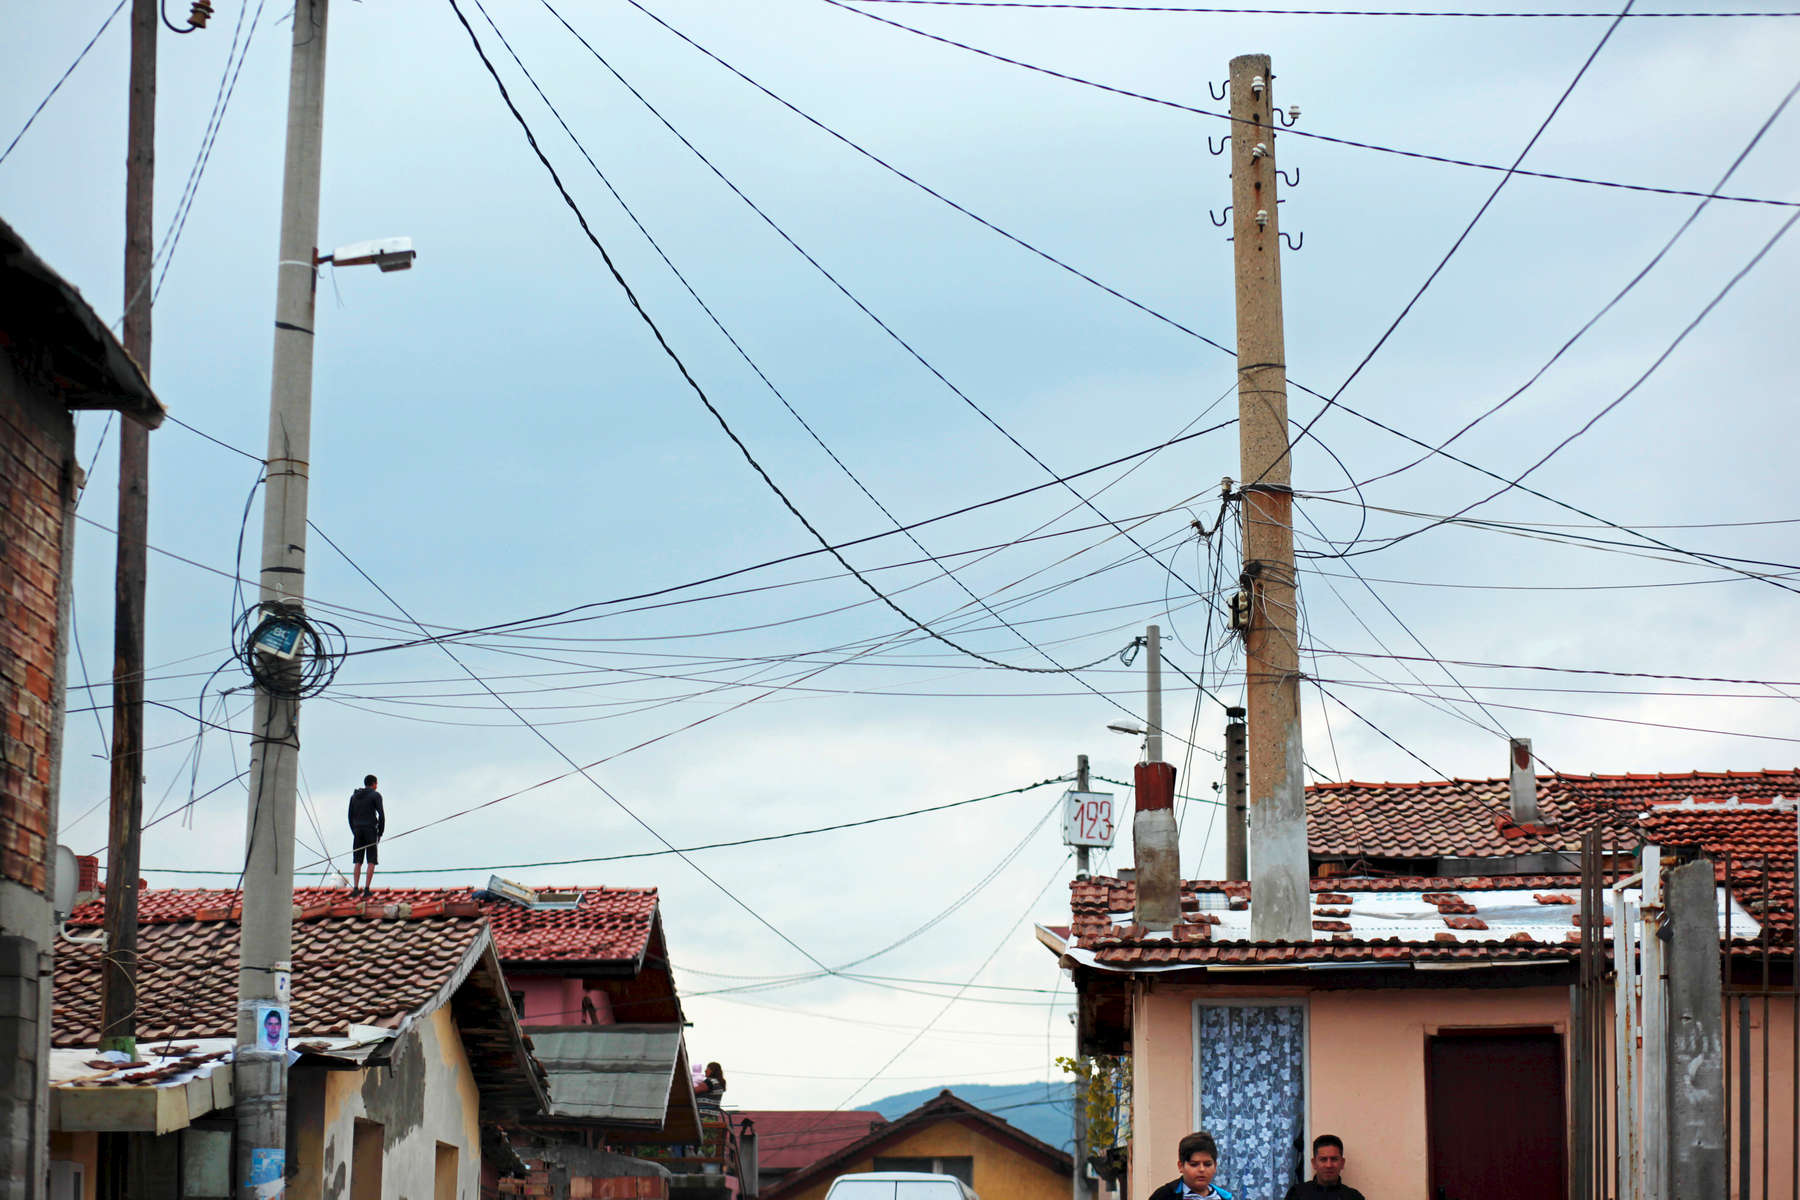 A man stands on a rooftop below a handmade electrical grid hanging over a Roma village, as people turn up to vote in October's Parliamentary elections in the nation's capital, Sofia. Today, October 5th, 2014, is also Midterm Elections day in the States - its multi-party ticket an unimaginable reality in autocratic Bulgaria pre-1989. Despite a month-long vacillation on the make-up of their political coalitions and their new prime minister - and that only 49% of the population turned up to vote today - party leaders narrowly avoided reelections, with former prime minister and leader of center-right party GERB Boyko Borisov reinstated at the post.The story of democracy in Bulgaria at age 25 is a cautionary tale about transplanting one-size-fits-all Western values to a nation still undergoing social and economic upheaval. Bulgaria is still one of the poorest, most corrupt nations in the European Union, its post-1989 hopes wilted by political instability, high crime rates and skyrocketing inflation. While Bulgarians can now freely vote and protest without much threat to their freedom, their new oppressor is corruption - which is at a 15 year high, across political and civil sectors alike. The ennui is so casually etched on the passerby's face that it becomes routine - one that fits in sadly well against a startling backdrop of rotting architecture, joblessness, and a vast population decline. Despite what democracy has changed in Bulgaria, the daily struggles of its populace remain largely untouched, trapped in a post-communist time capsule.